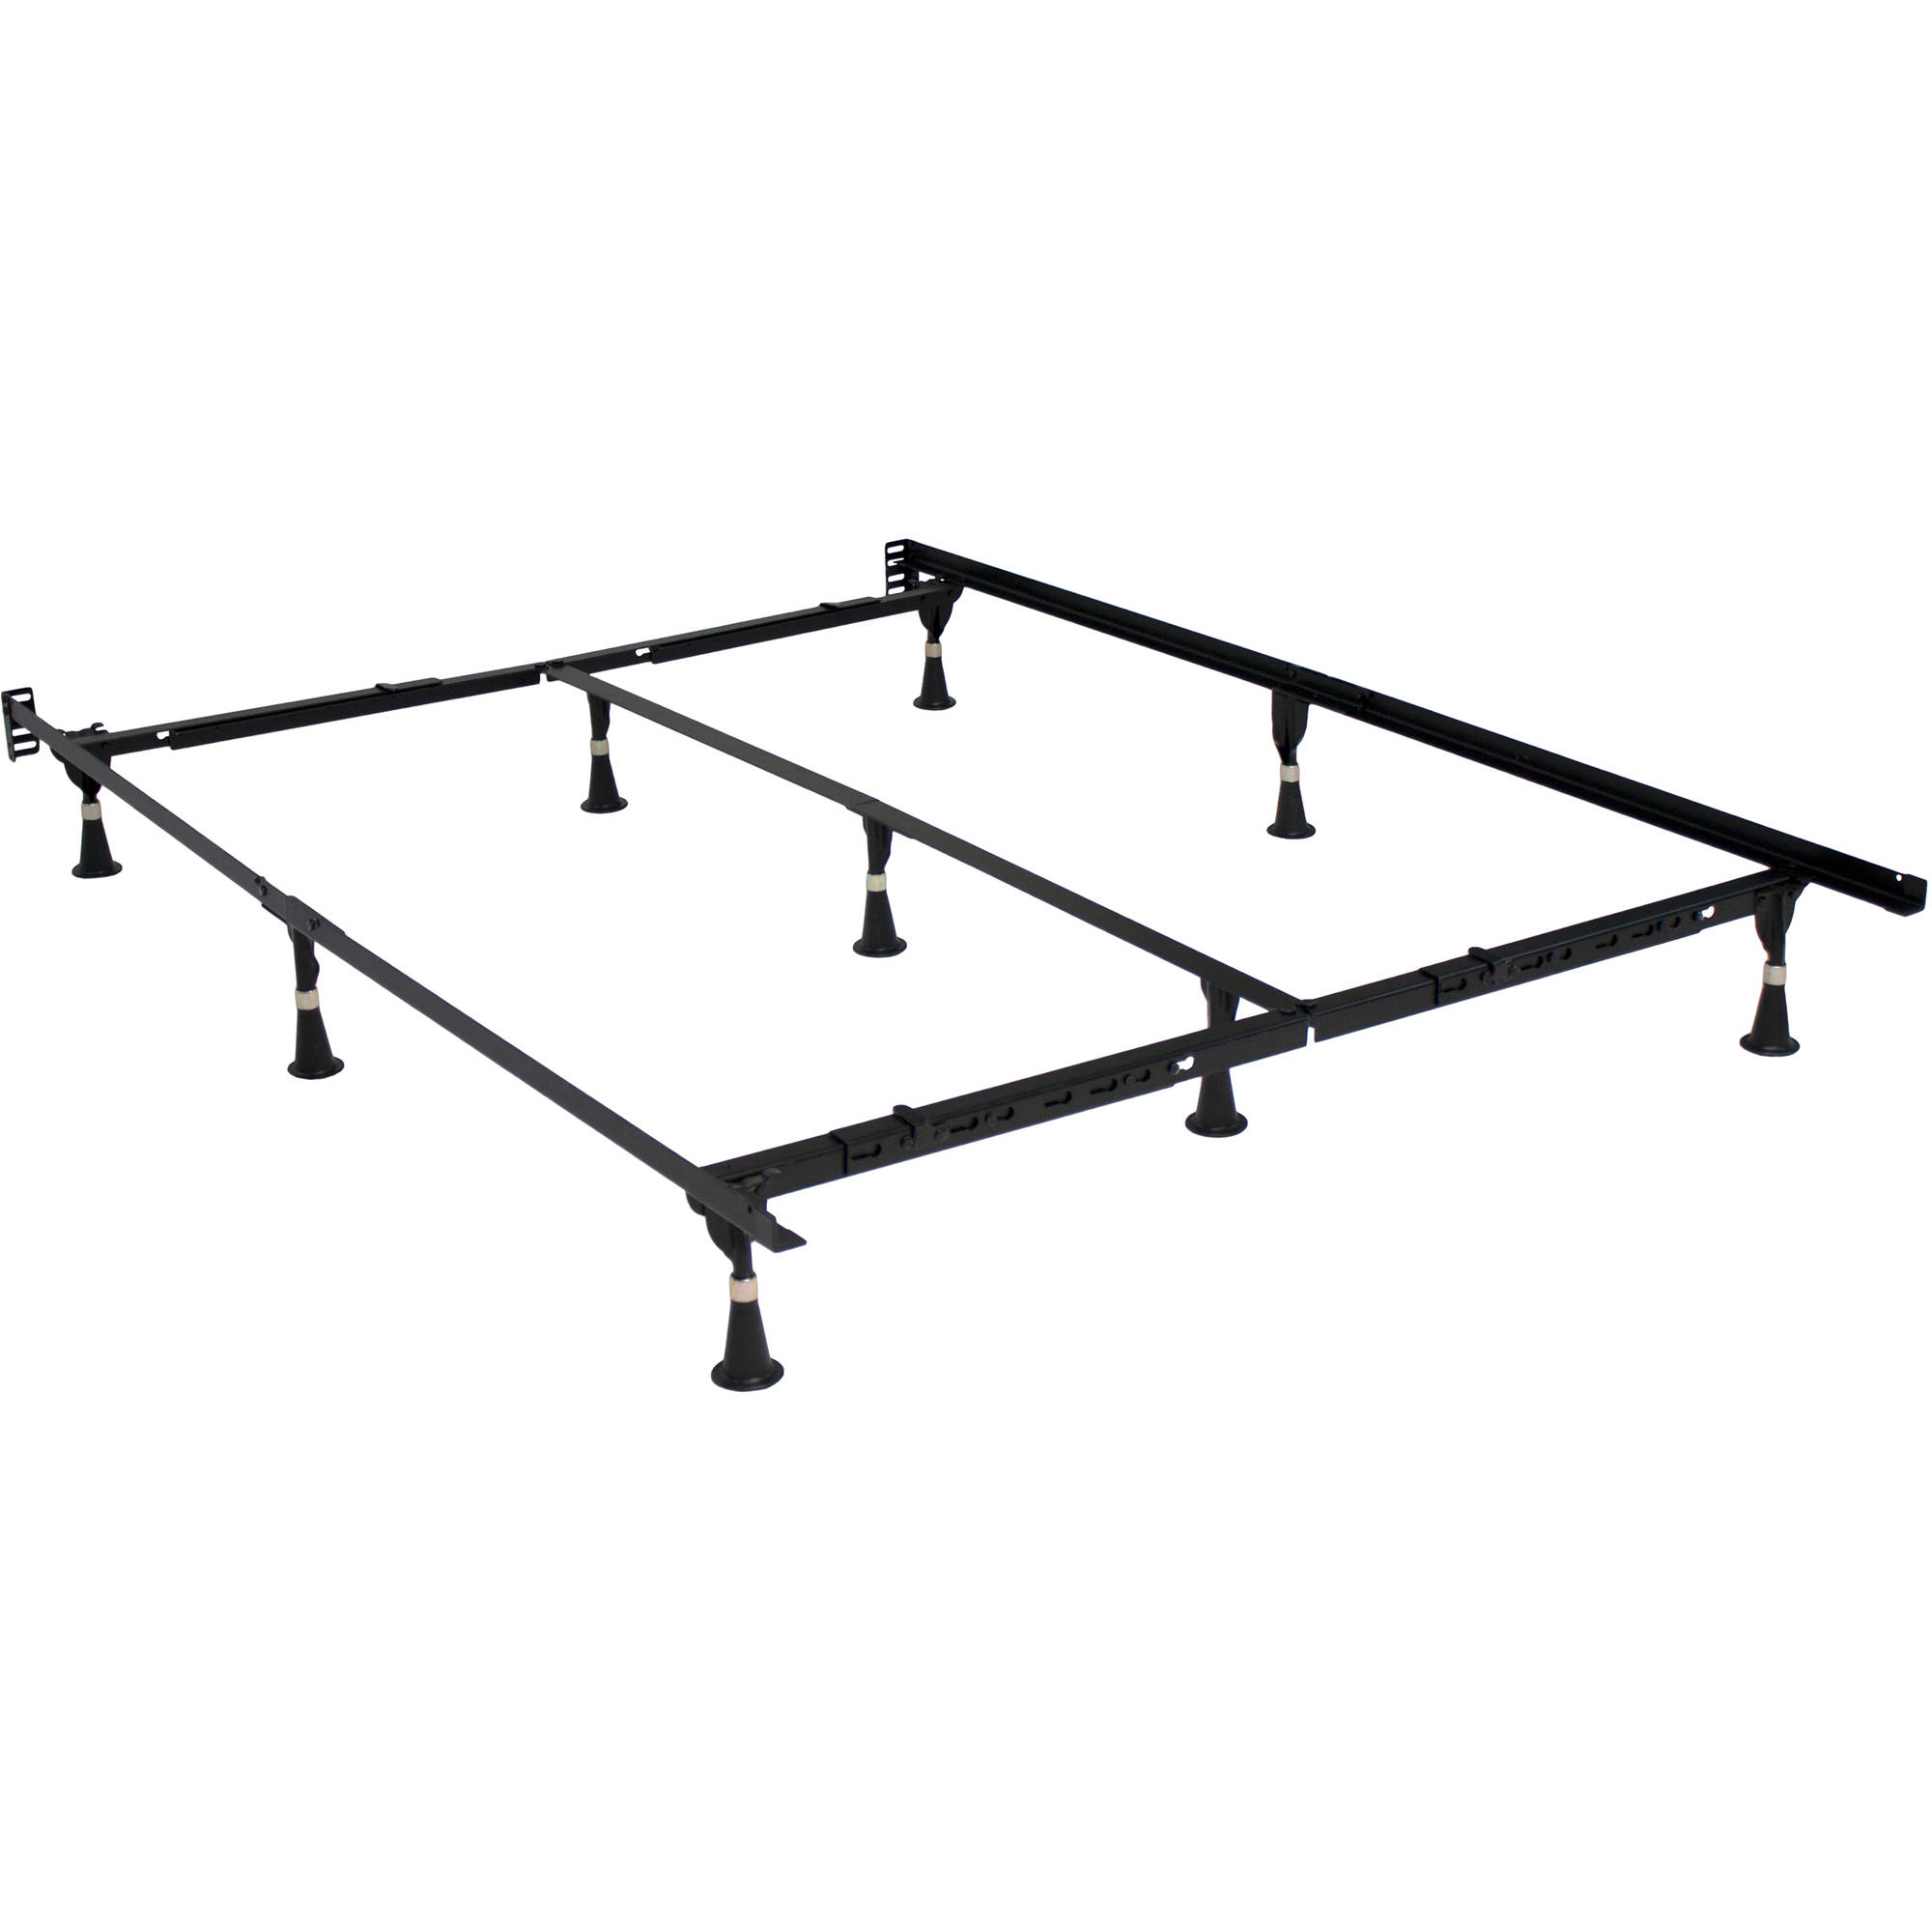 simmons br studio premium adjustable bed frame - Adjustable Bed Frame Reviews